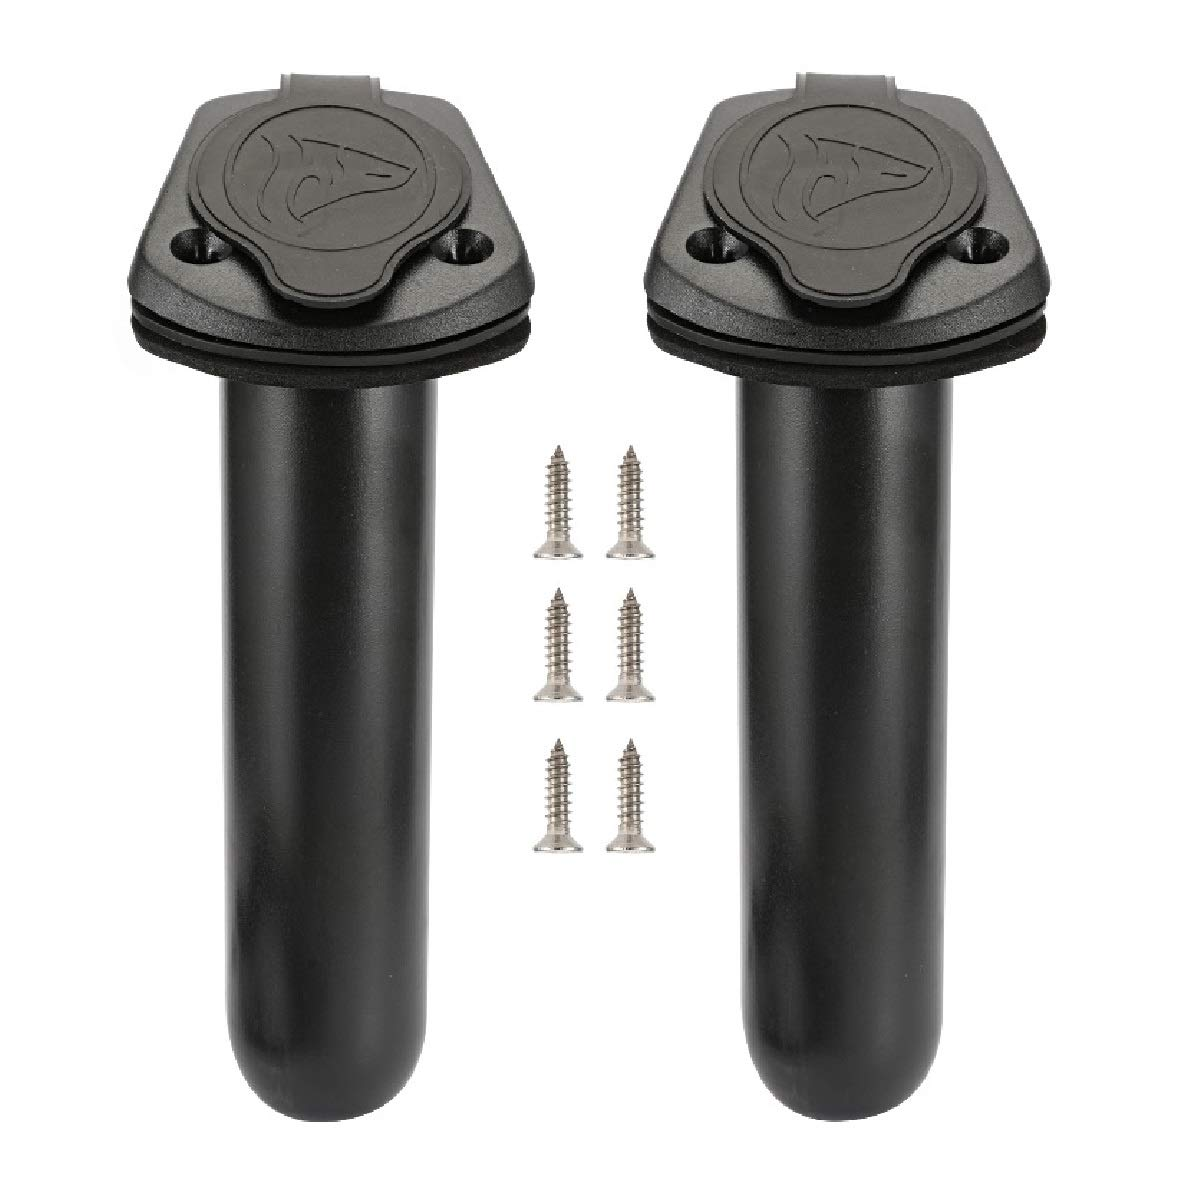 Anndason 2 Pcs Kayak Deck Plastic Flush Mount Fishing Boat Rod Holders and Cap Cover, Fishing Tackle Accessory Tool 61oisKUdUqL